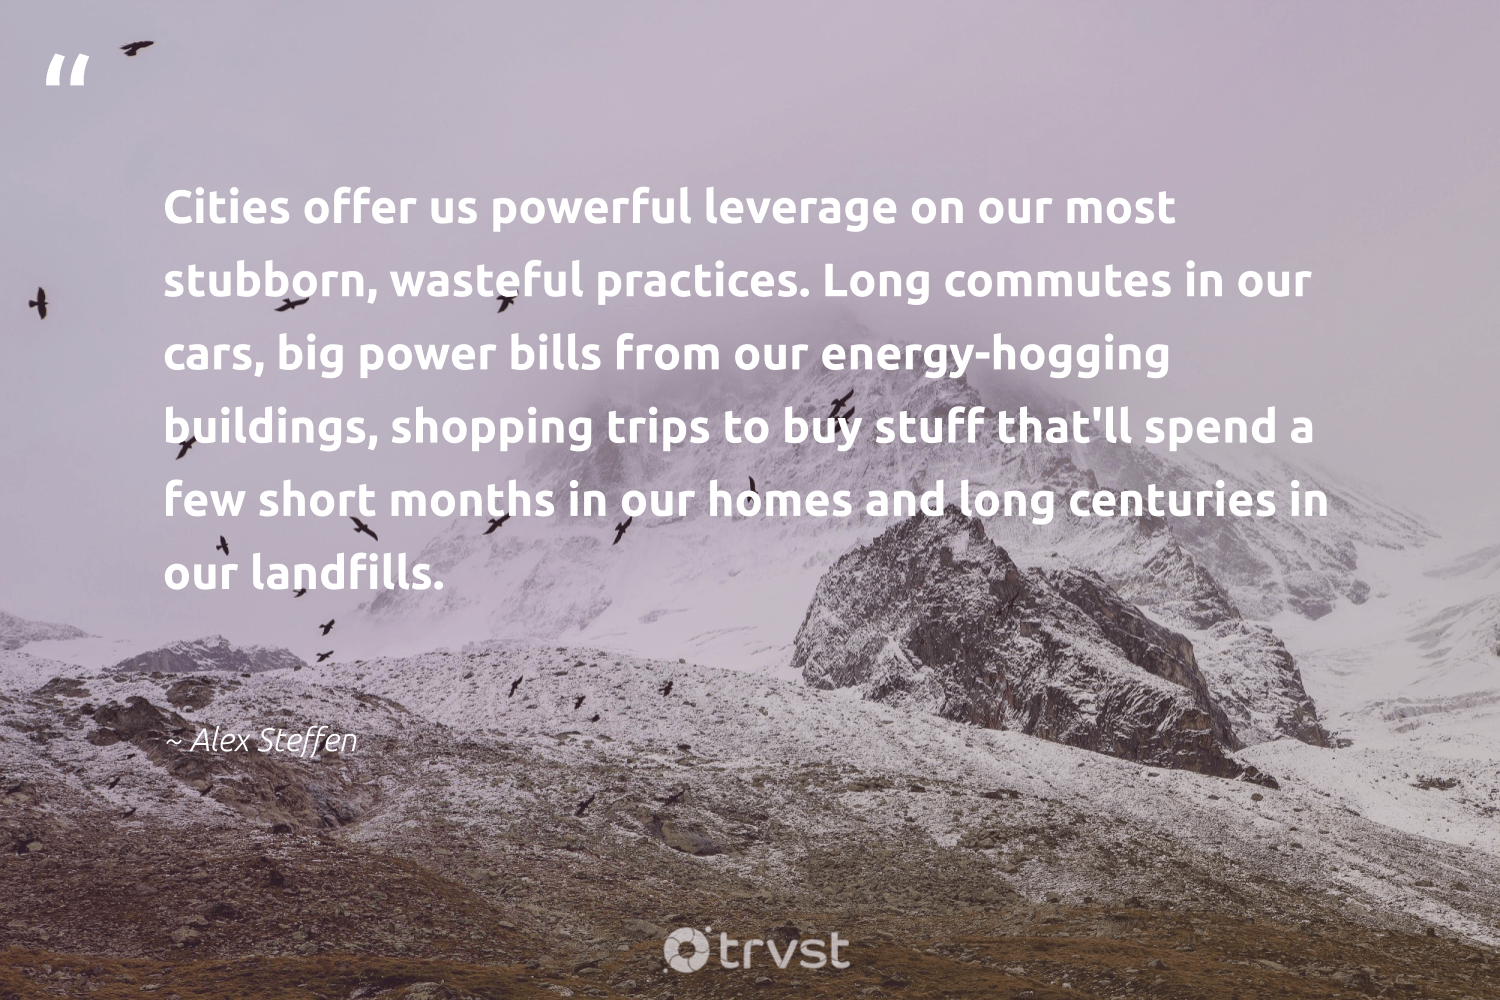 """""""Cities offer us powerful leverage on our most stubborn, wasteful practices. Long commutes in our cars, big power bills from our energy-hogging buildings, shopping trips to buy stuff that'll spend a few short months in our homes and long centuries in our landfills.""""  - Alex Steffen #trvst #quotes #landfills #energy #ecofriendly #gogreen #savetheplanet #collectiveaction #environmentallyfriendly #changetheworld #takeaction #dotherightthing"""